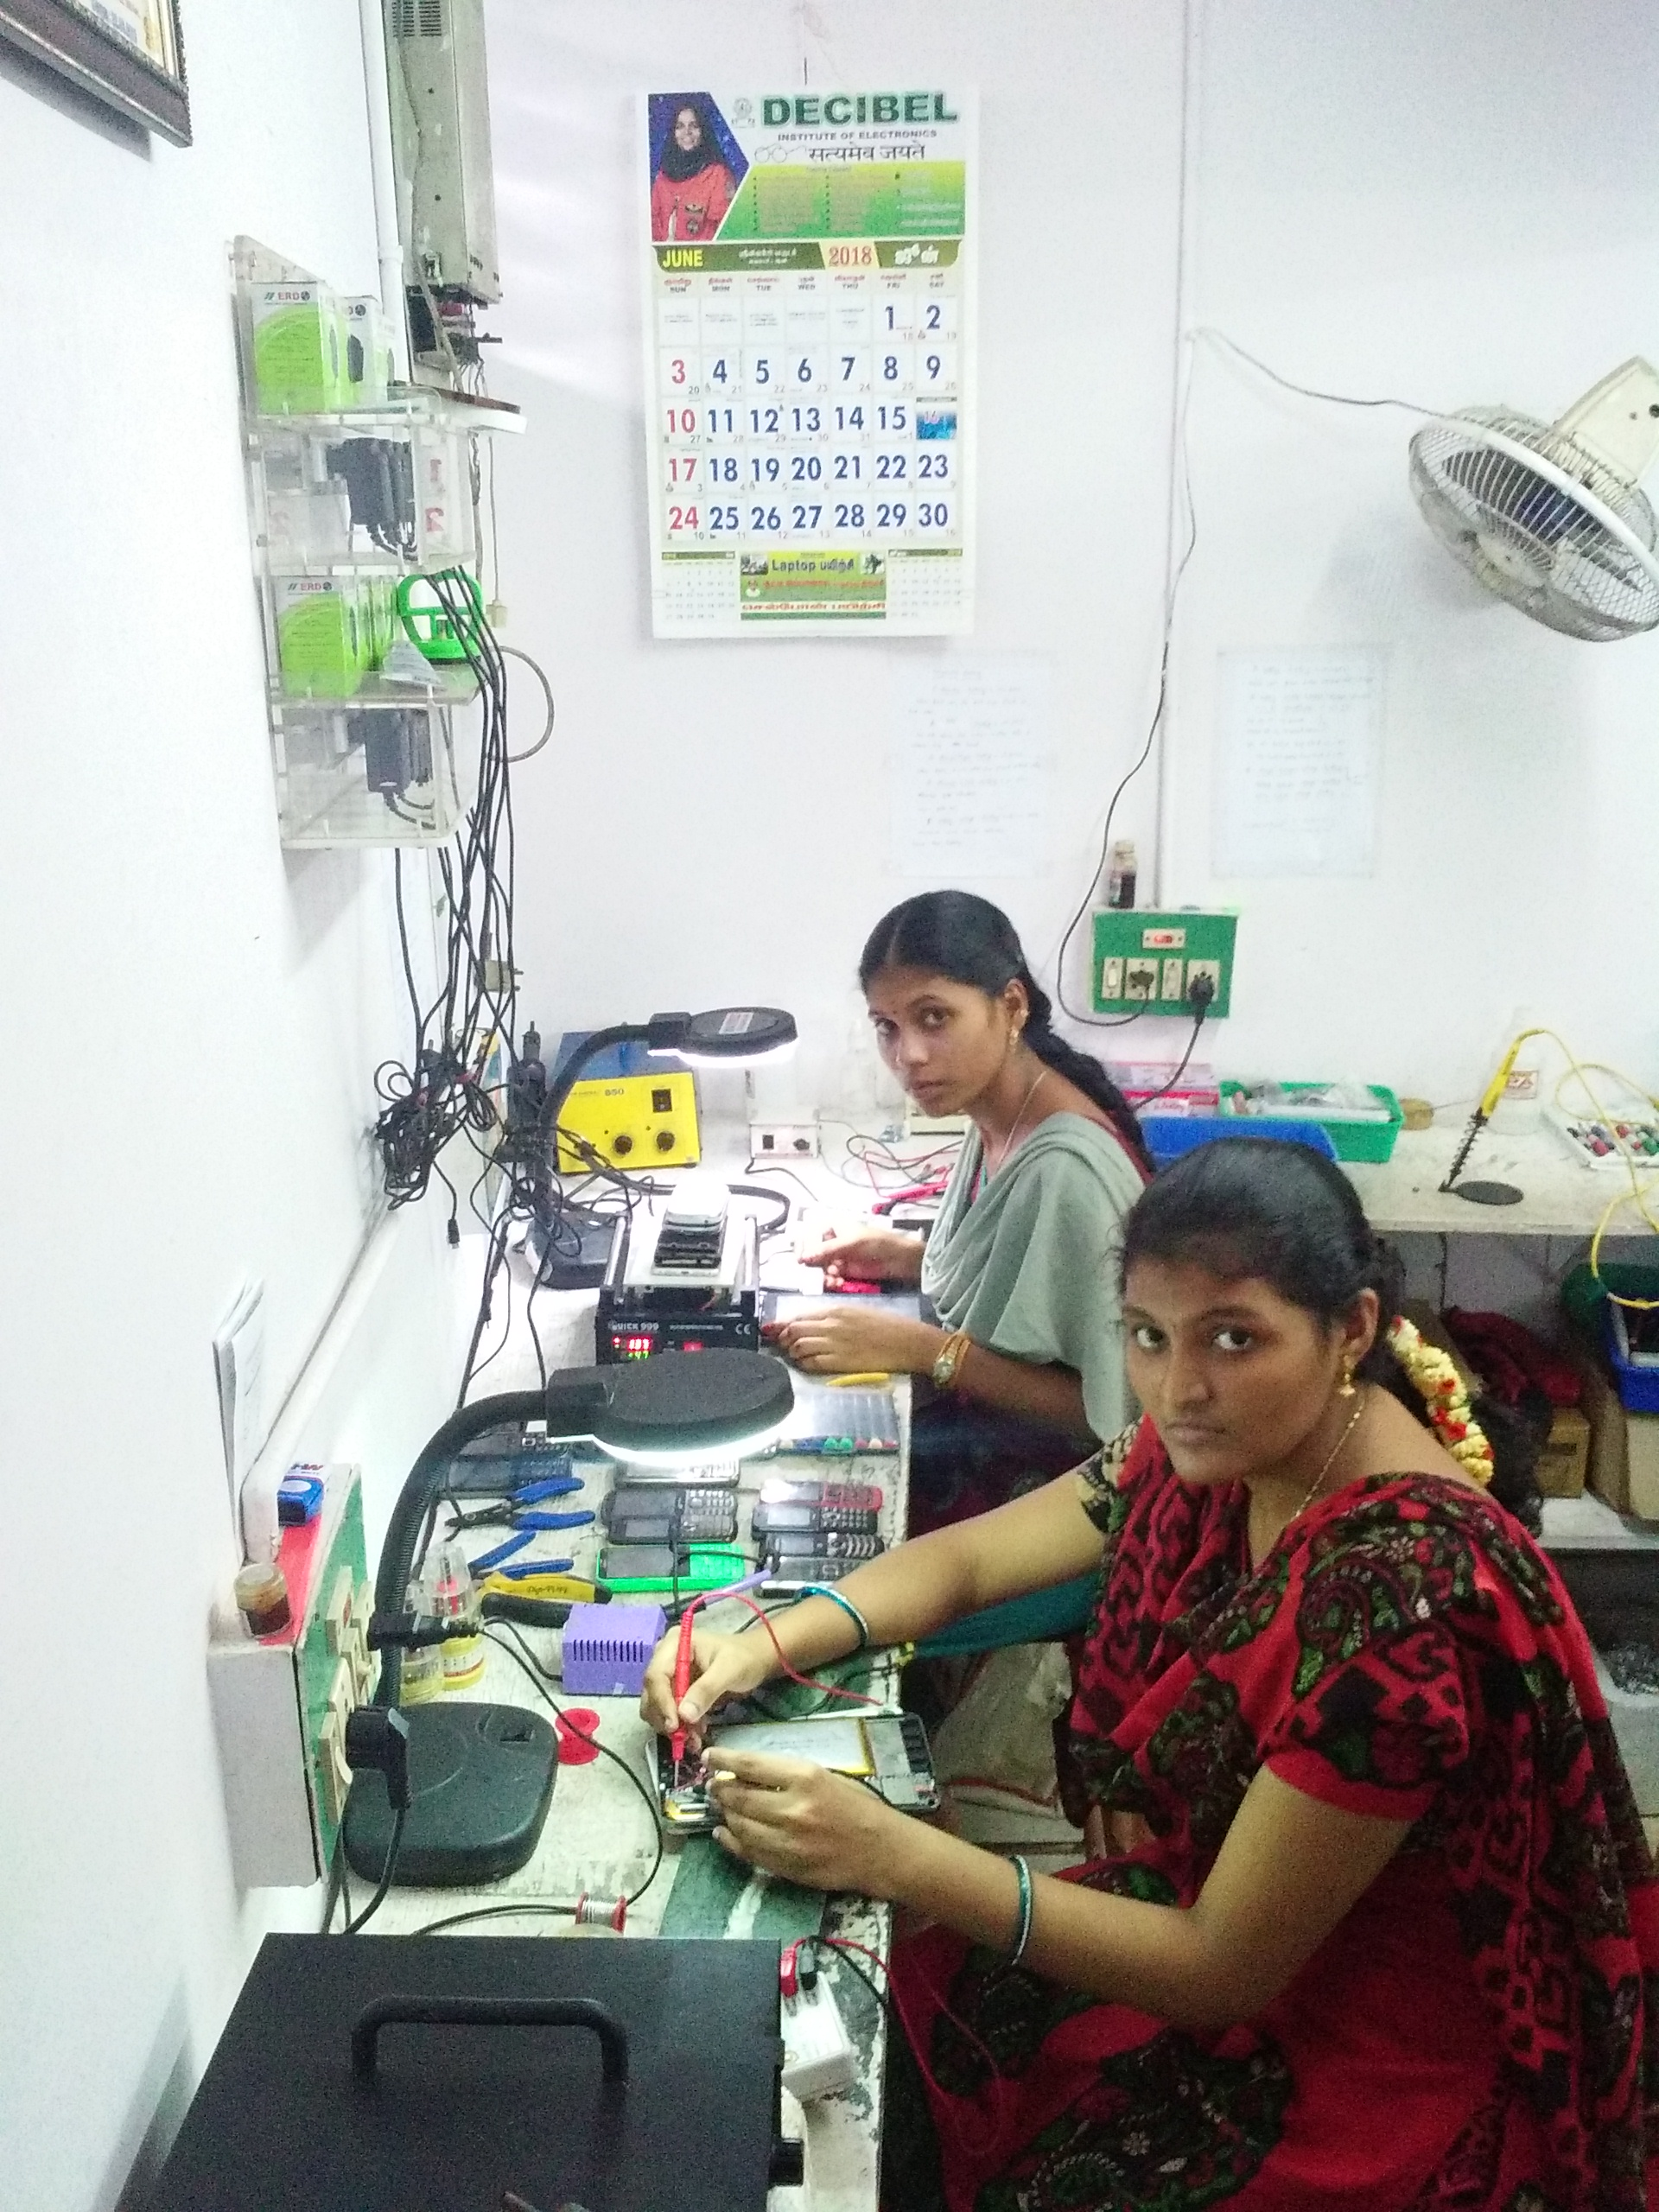 Decibel Institute Of Electronics In Anna Nagar Trichy 620002 Sulekha Trichy